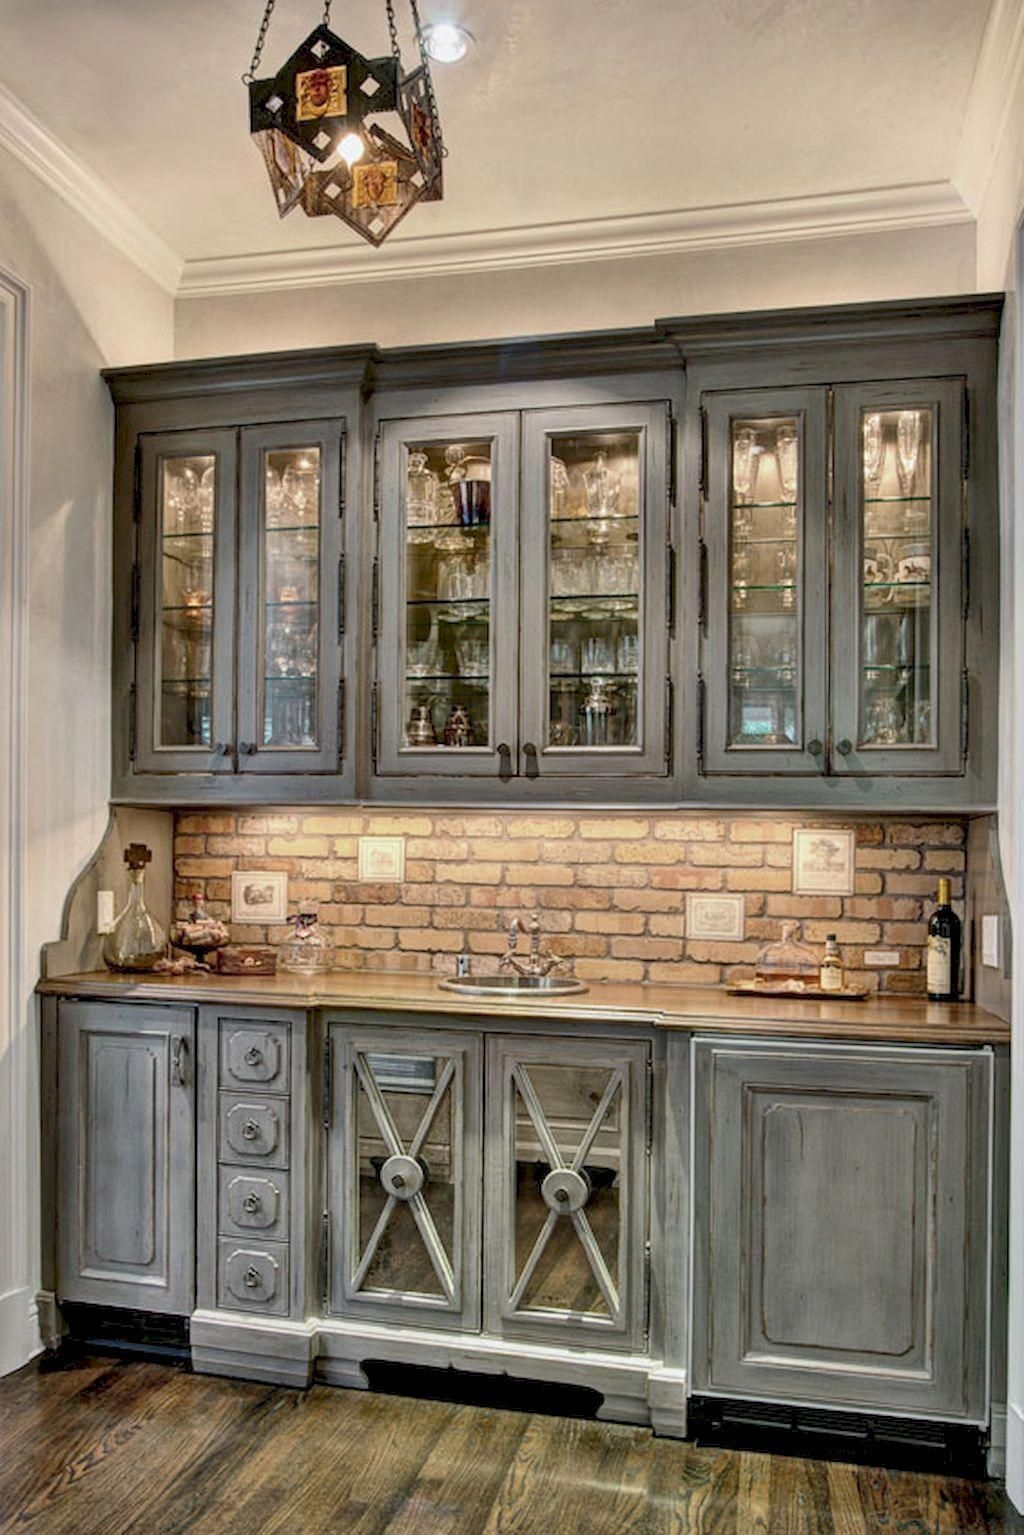 25 Ways To Style Grey Kitchen Cabinets Rustic Farmhouse Kitchen Modern Farmhouse Kitchens Farmhouse Kitchen Decor